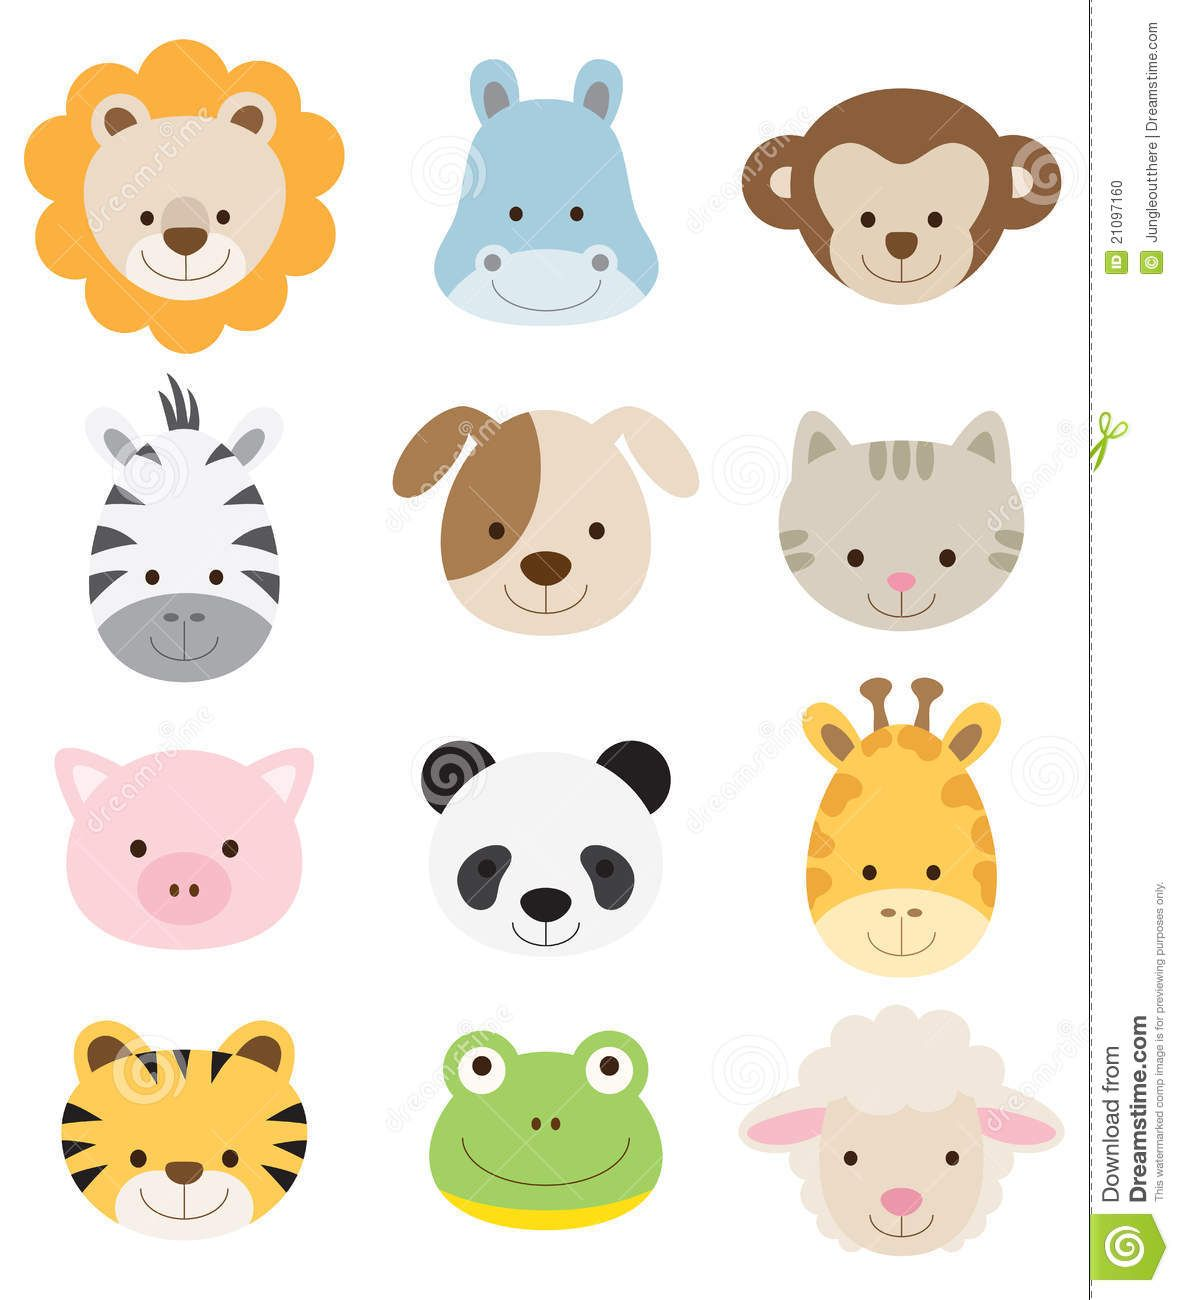 pinterest clipart animals - photo #41